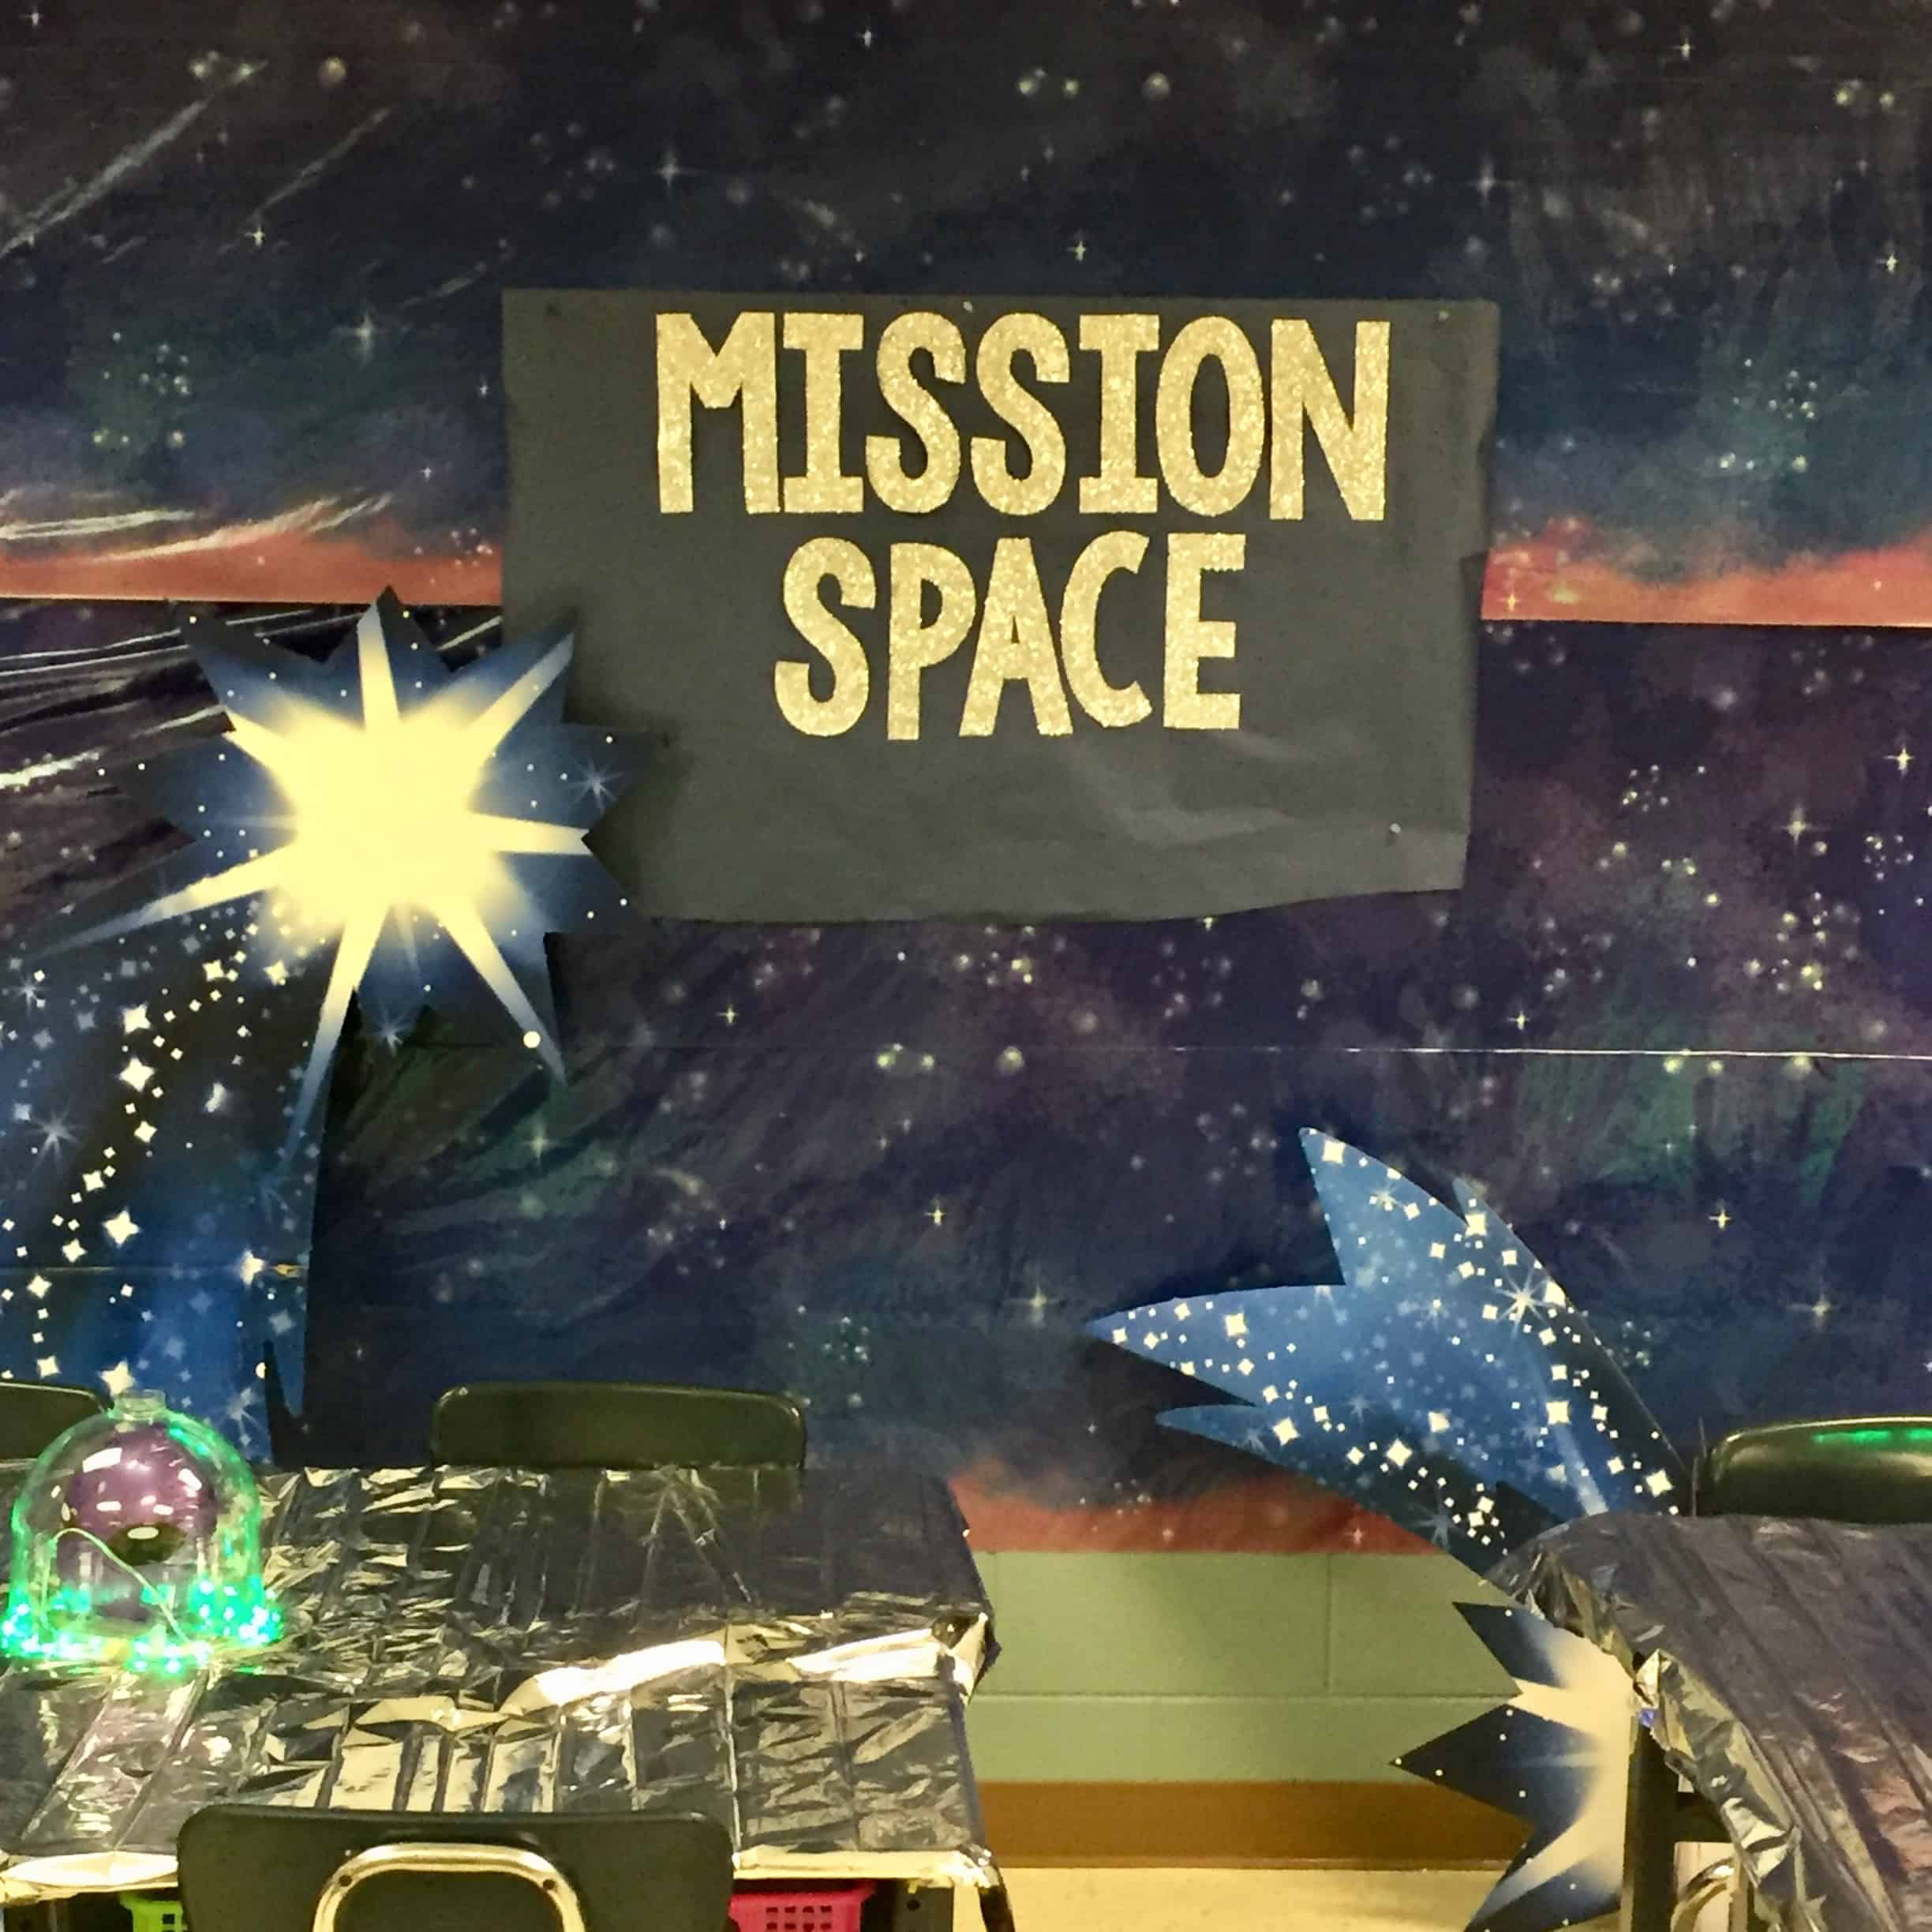 Teaching About Space: A starry backdrop with shooting stars, and Mission Space in glittering text on black paper.